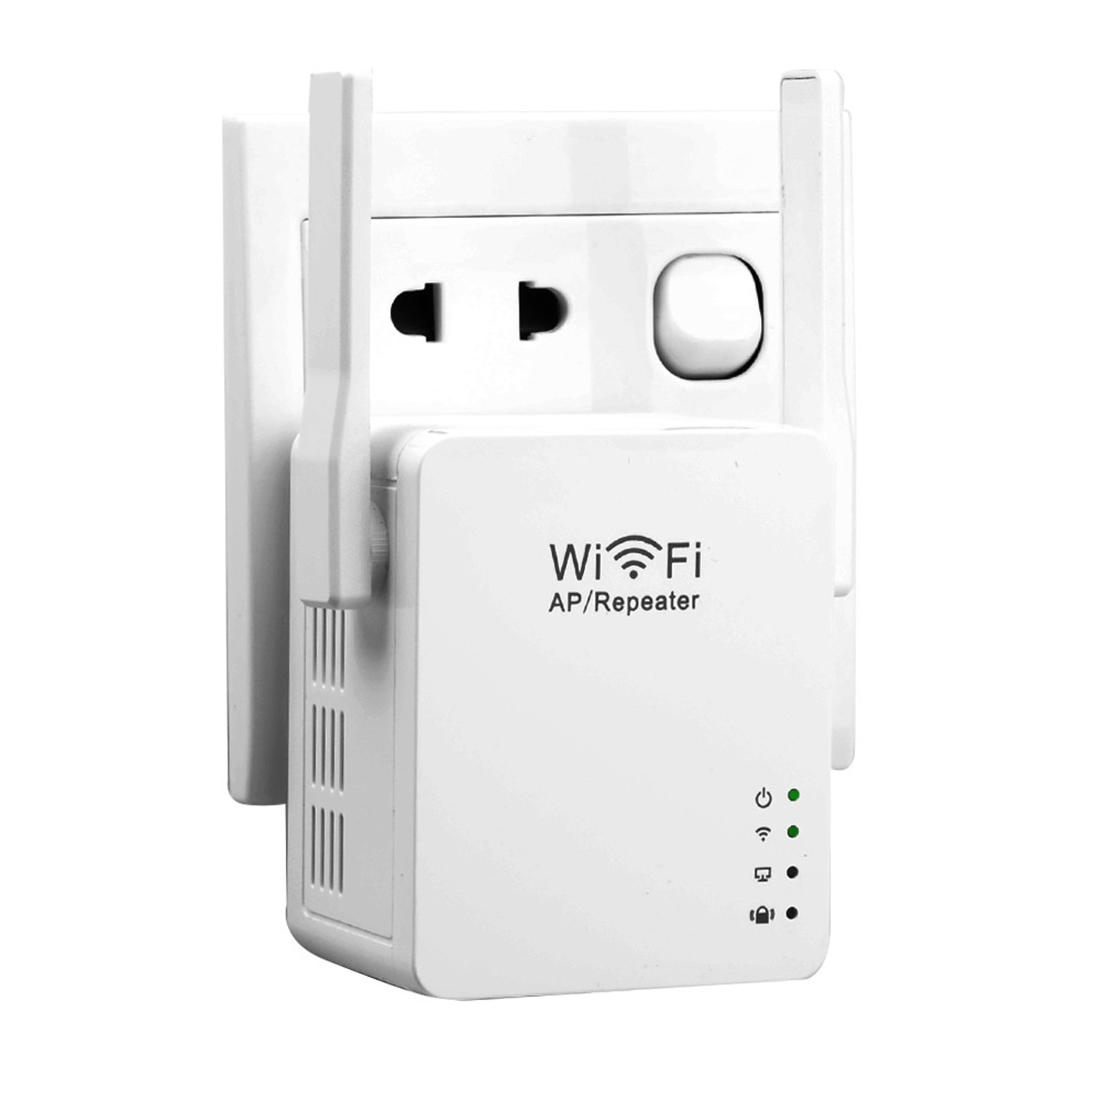 New USB WiFi Repeater WiFi Range Extender with Micro USB2.0 Port 5V/2A Support Booster and AP Mode EU/US/UK/AU Plug(China (Mainland))